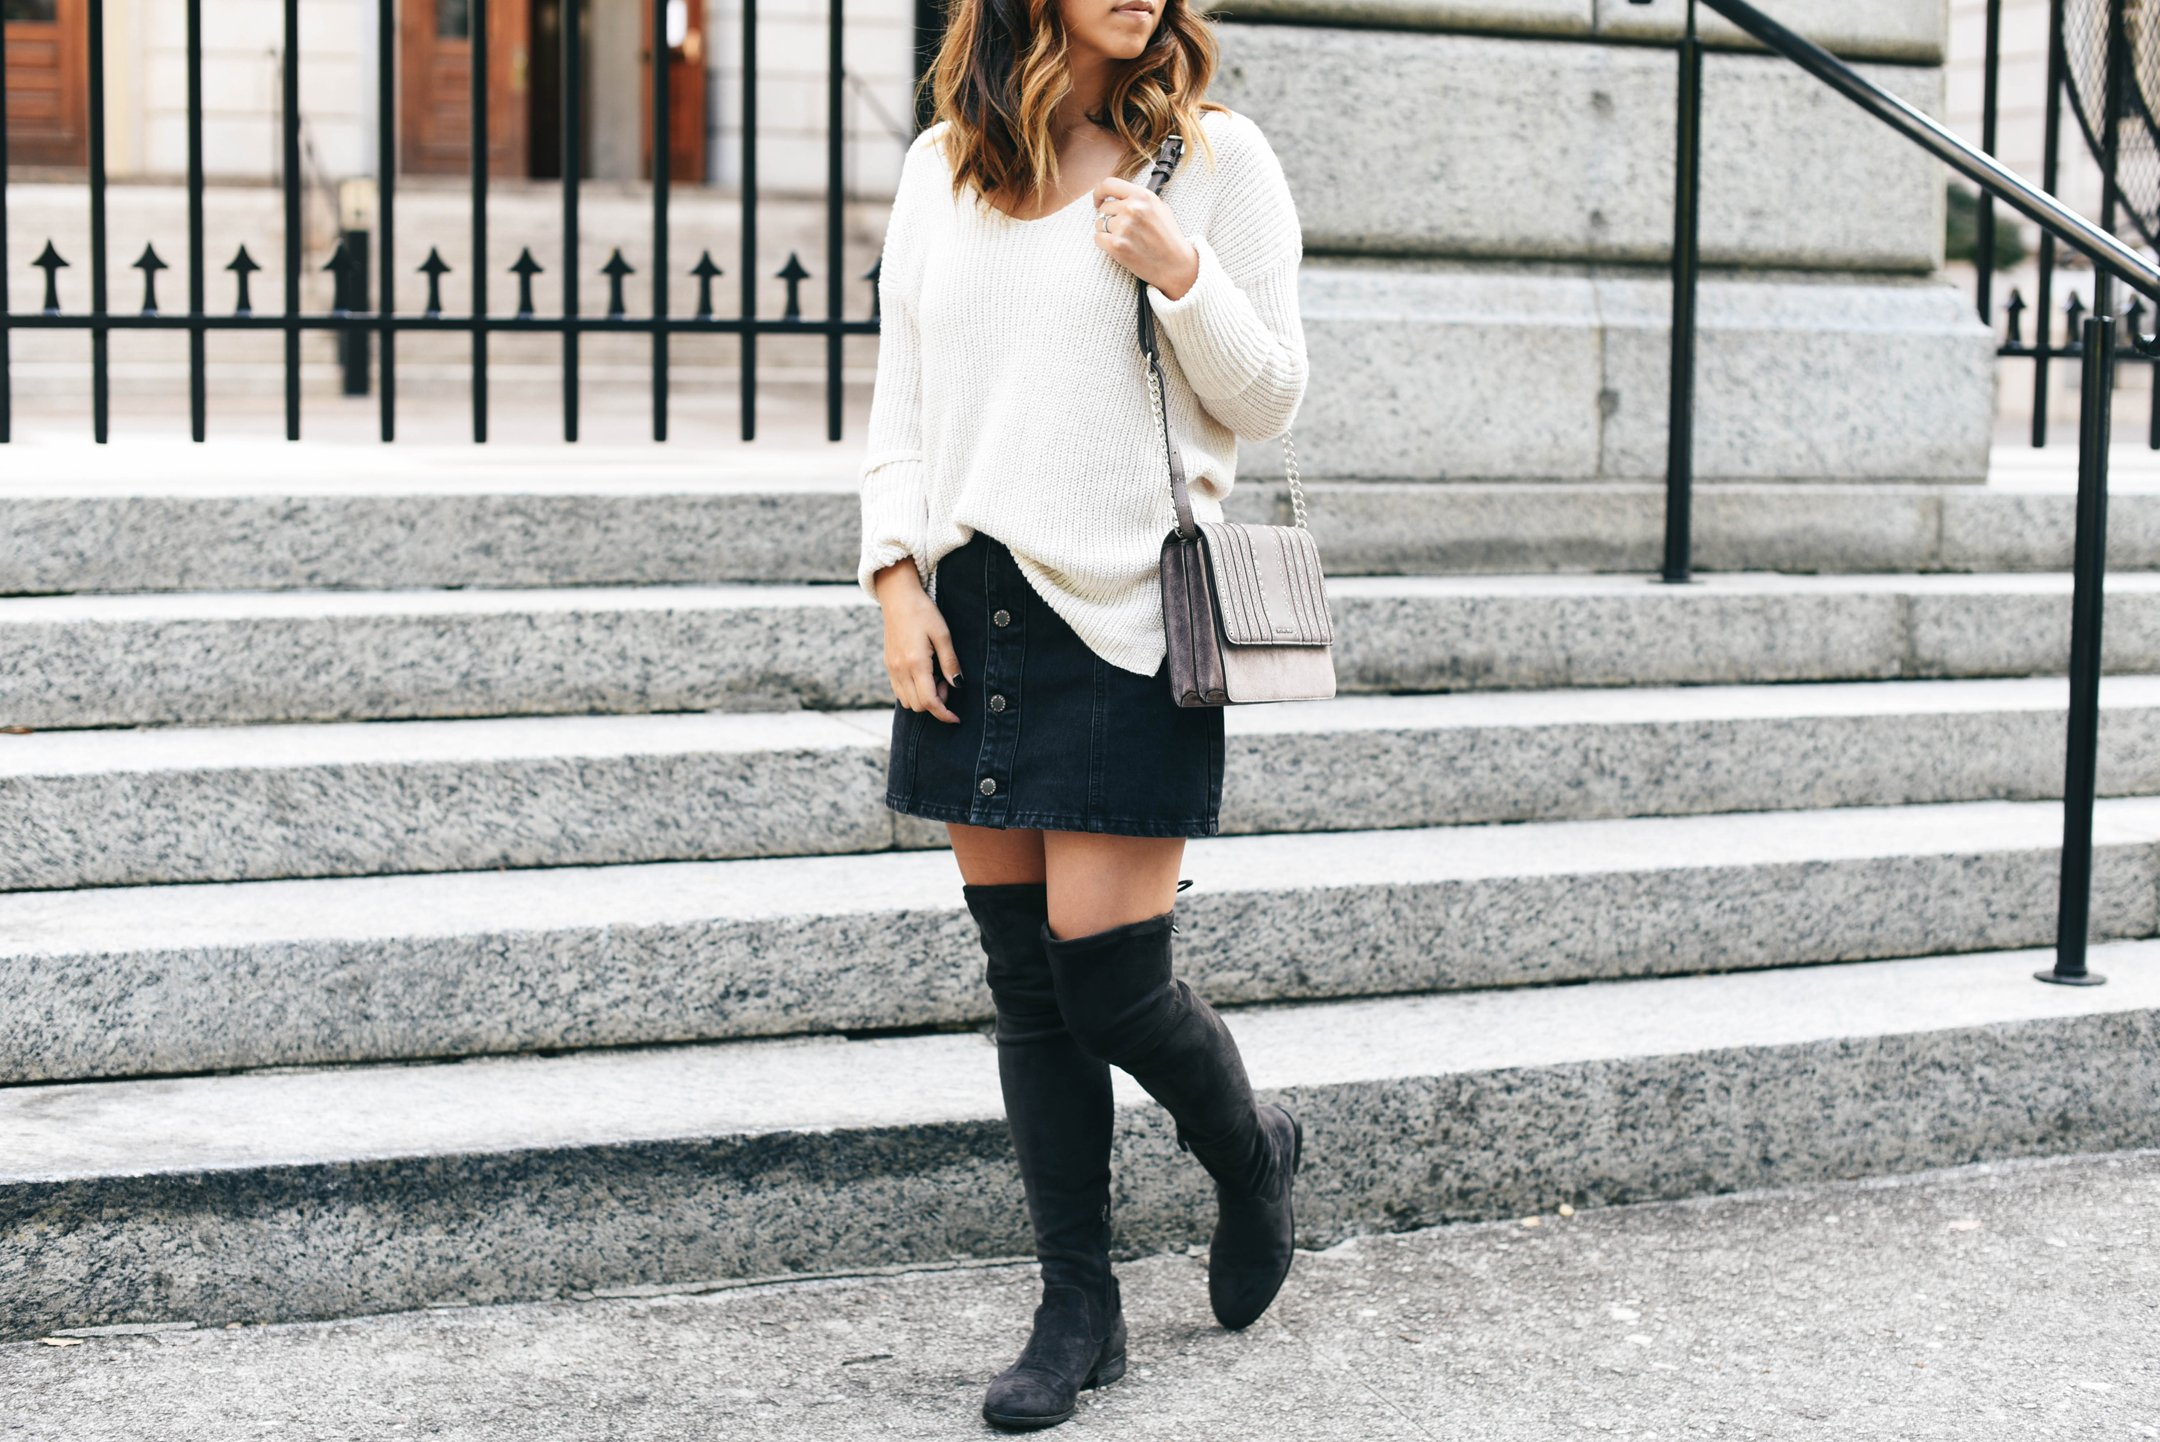 crystalin-marie-wearing-dolce-vita-neely-boots